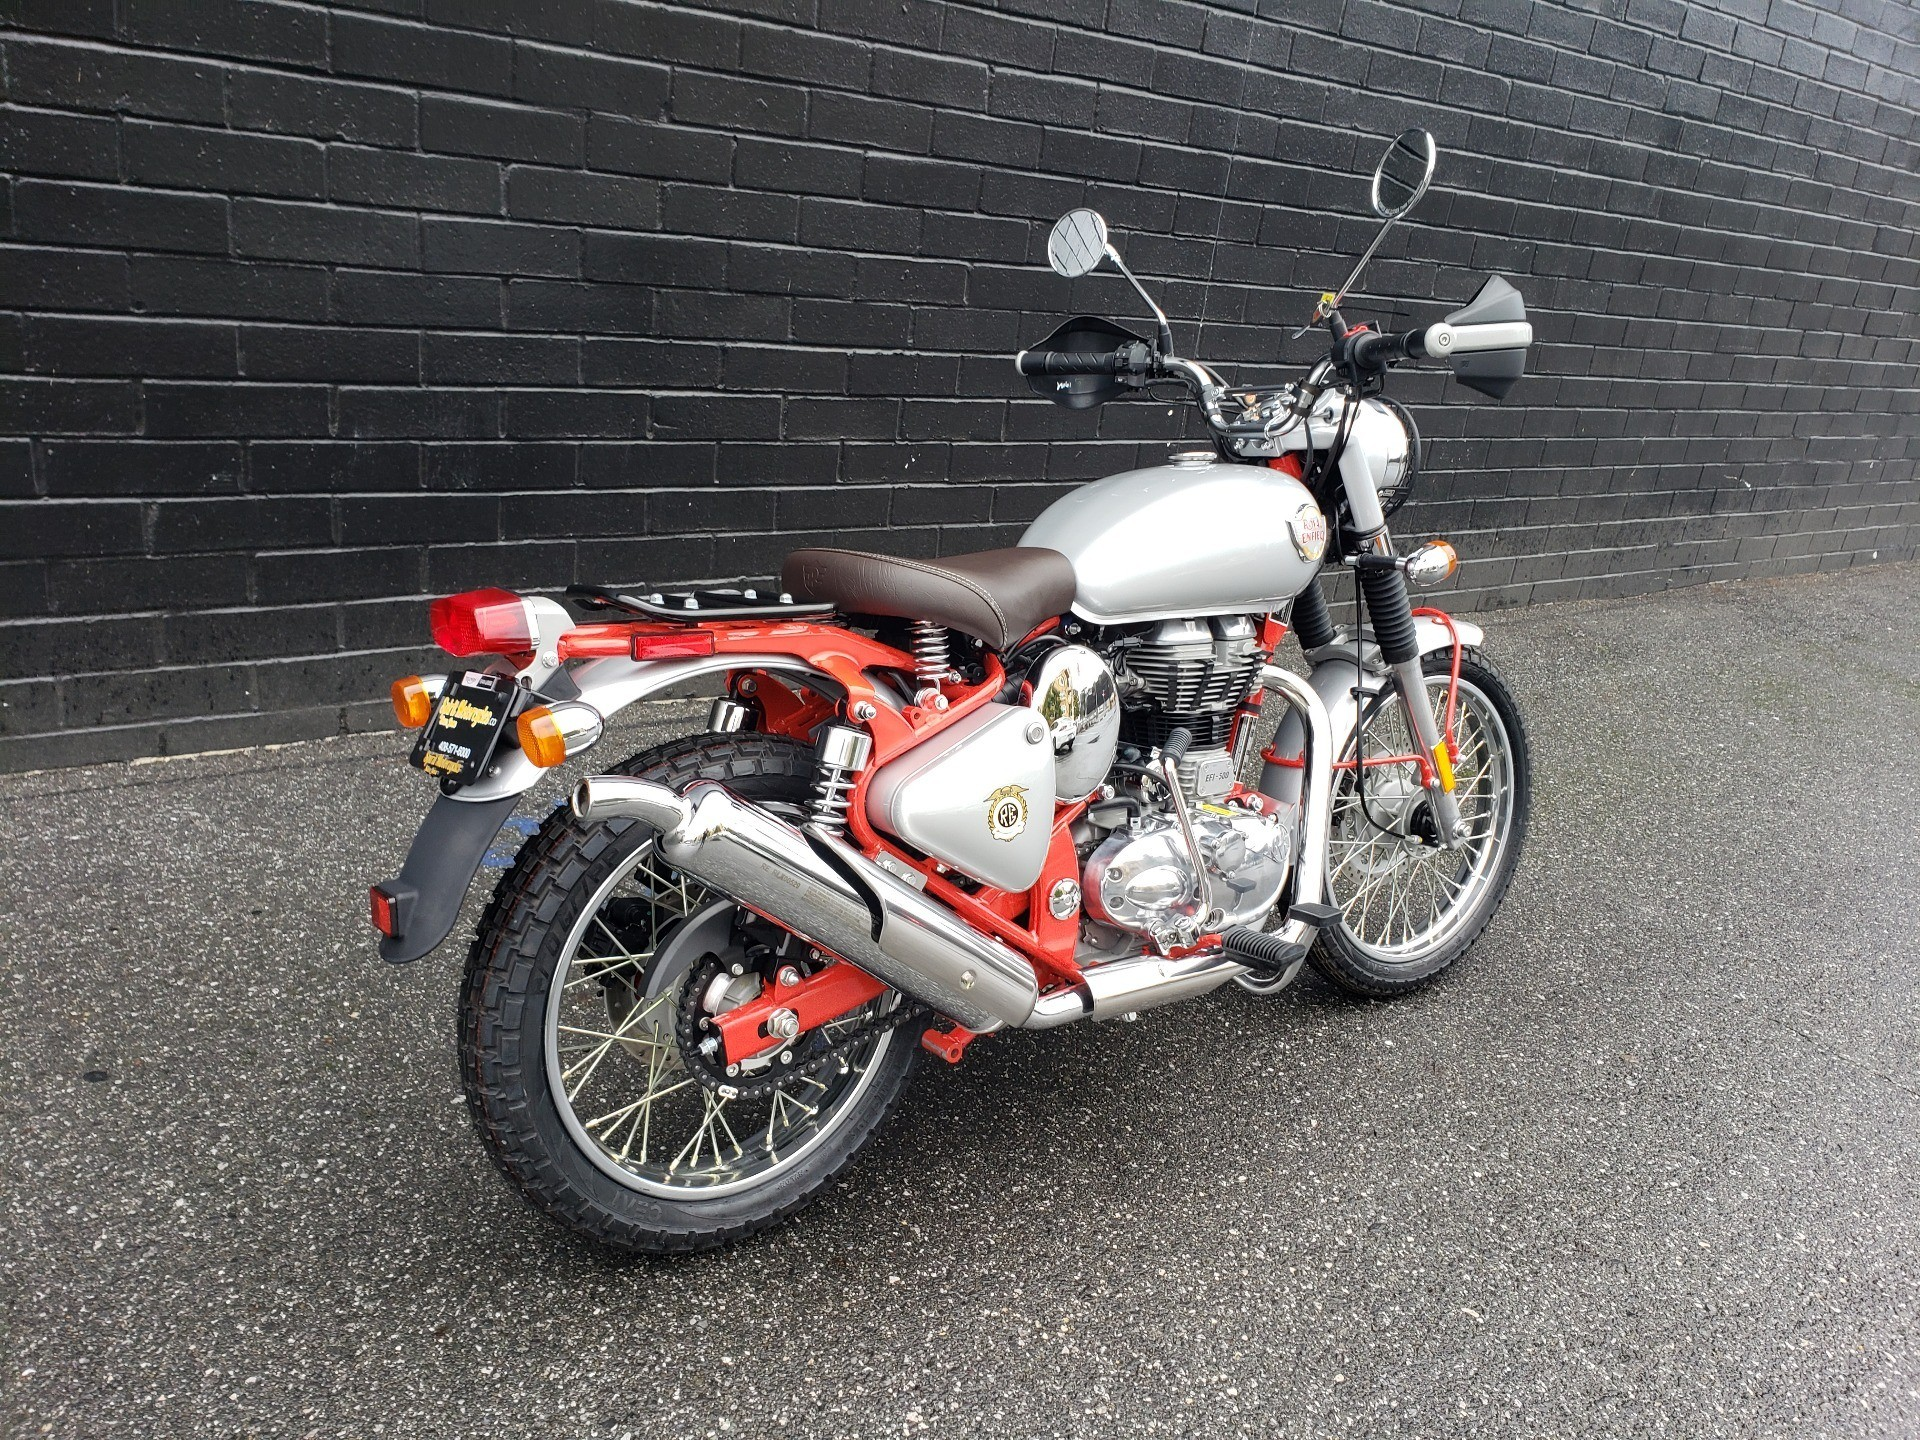 2020 Royal Enfield Bullet Trials Works Replica 500 Limited Edition in San Jose, California - Photo 10